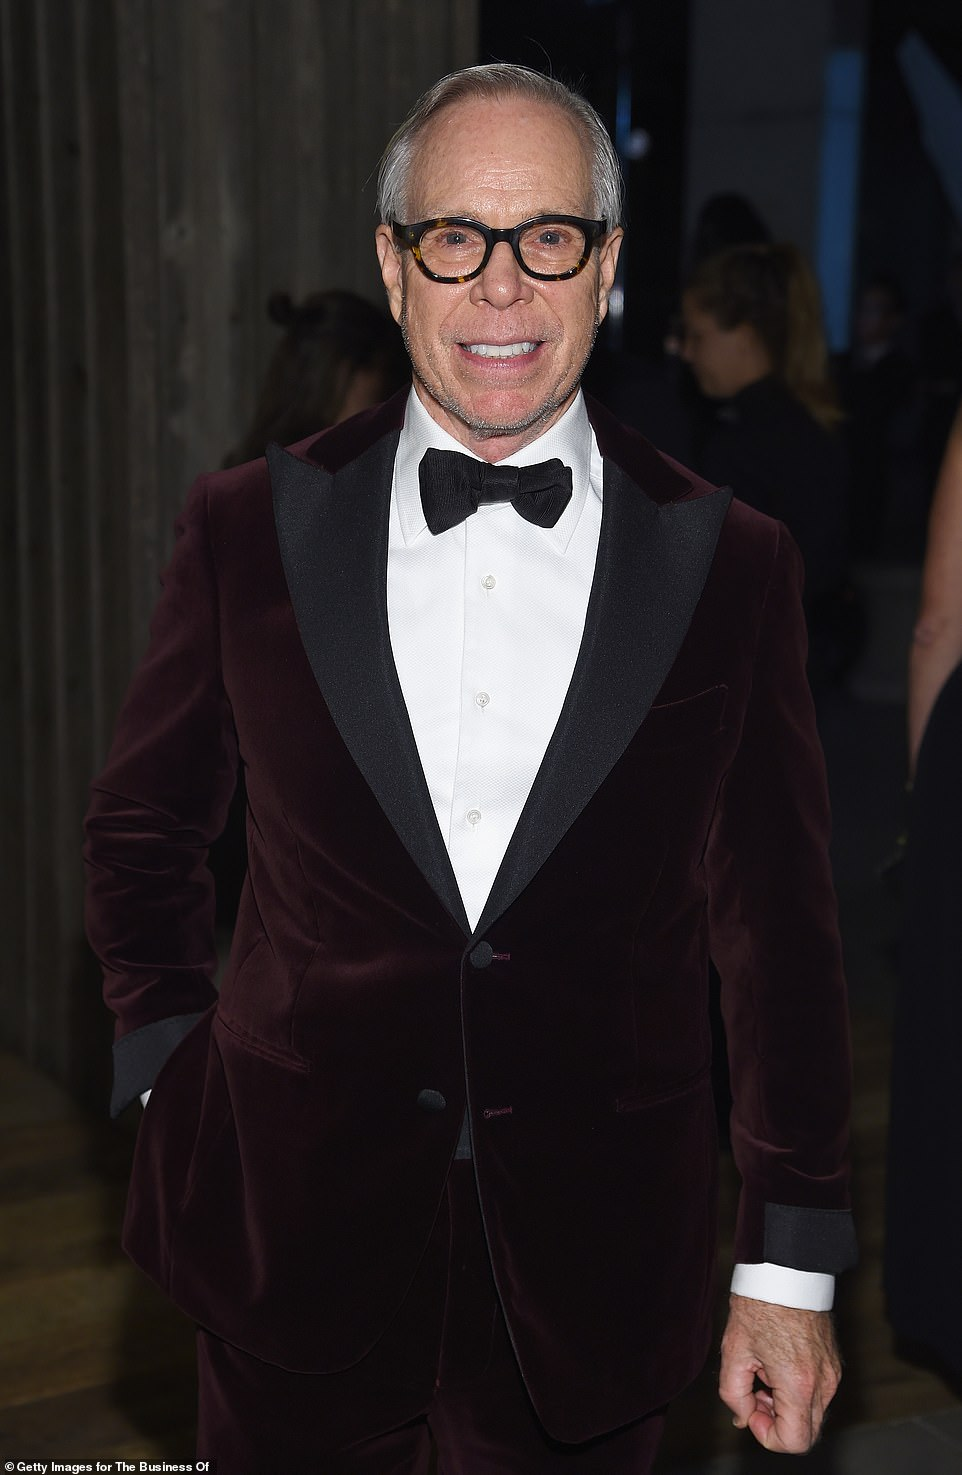 Looking for a sale: Designer Tommy Hilfiger is seeking to offload his one-of-a-kind oceanfront home at Miami's Golden Beach for $24.5 million, Variety reported Thursday